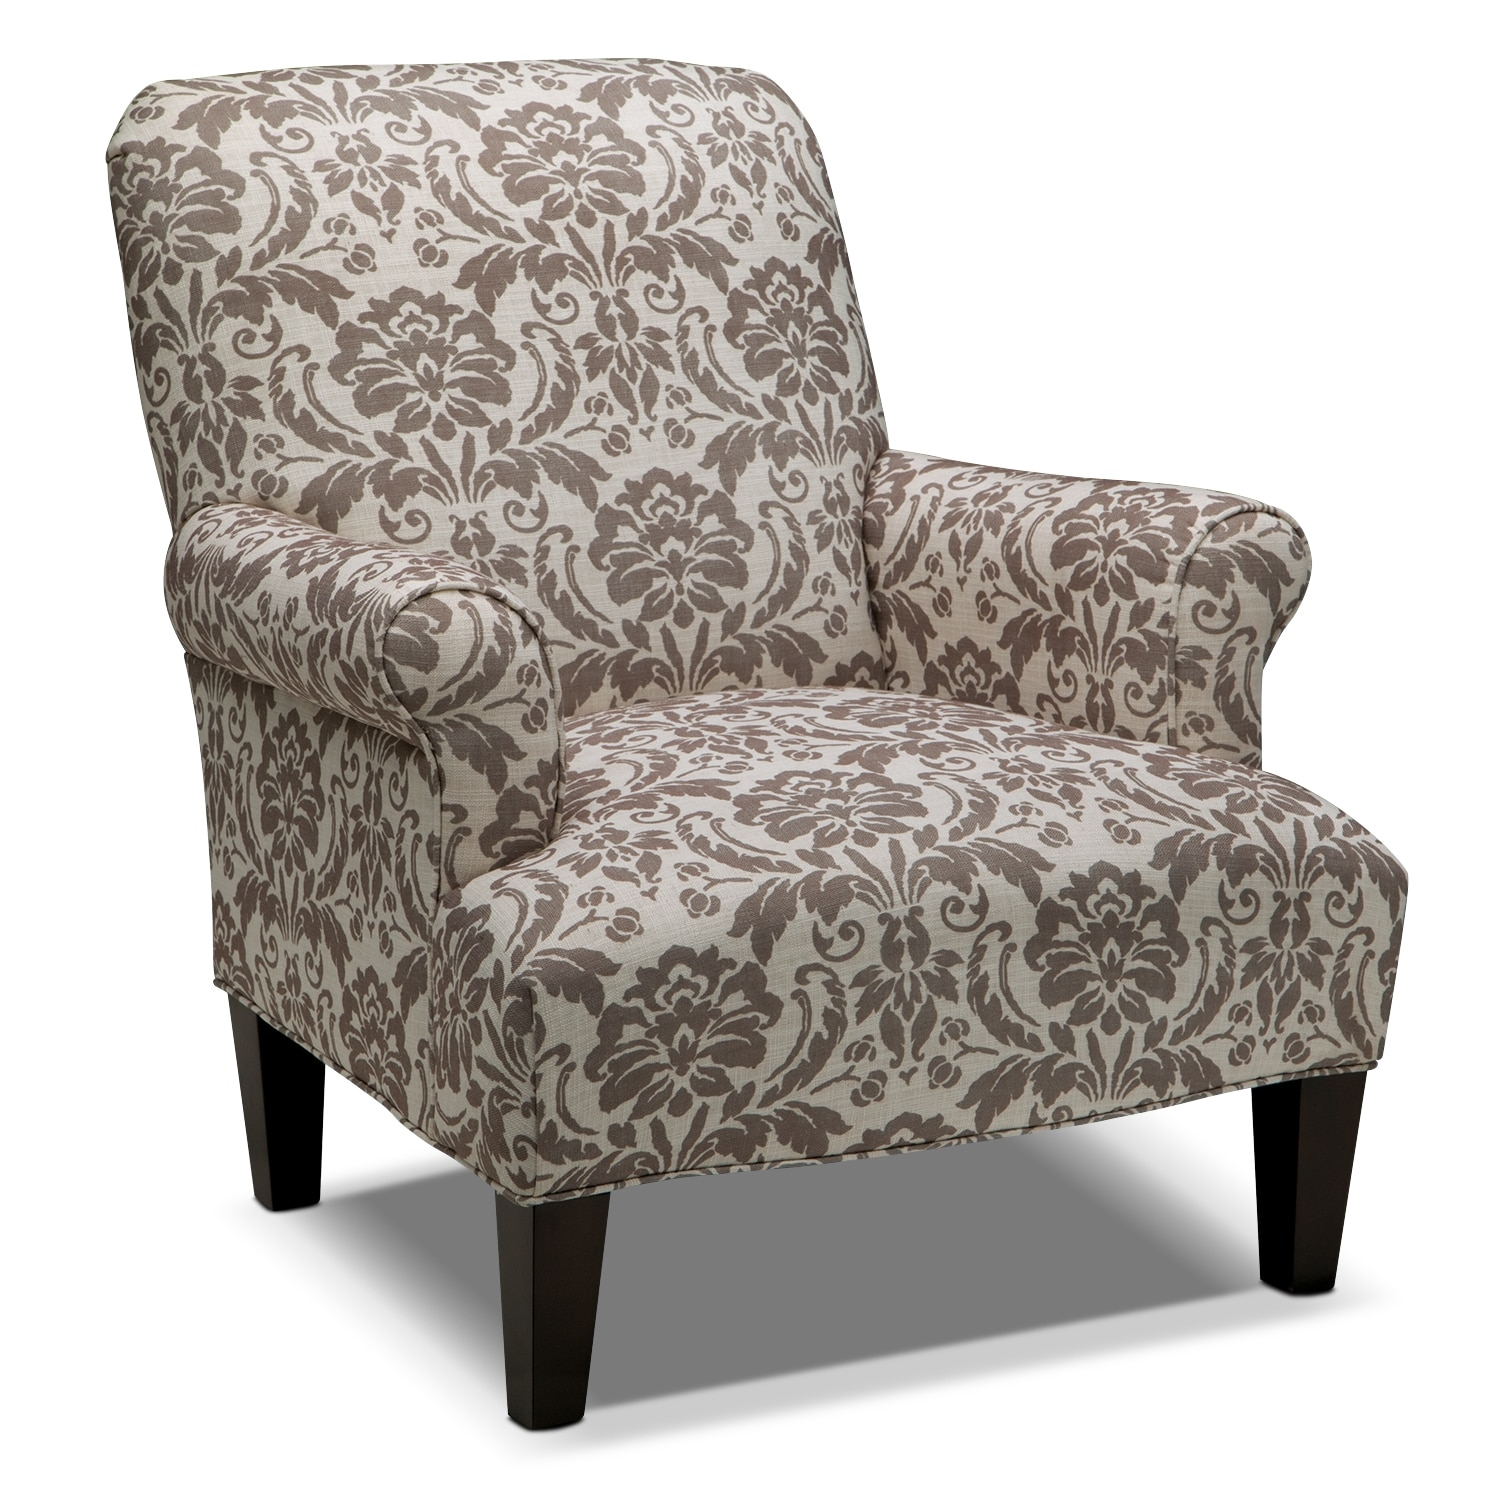 American Accent Furniture Selayang: Candice Accent Chair - Gray And Cream